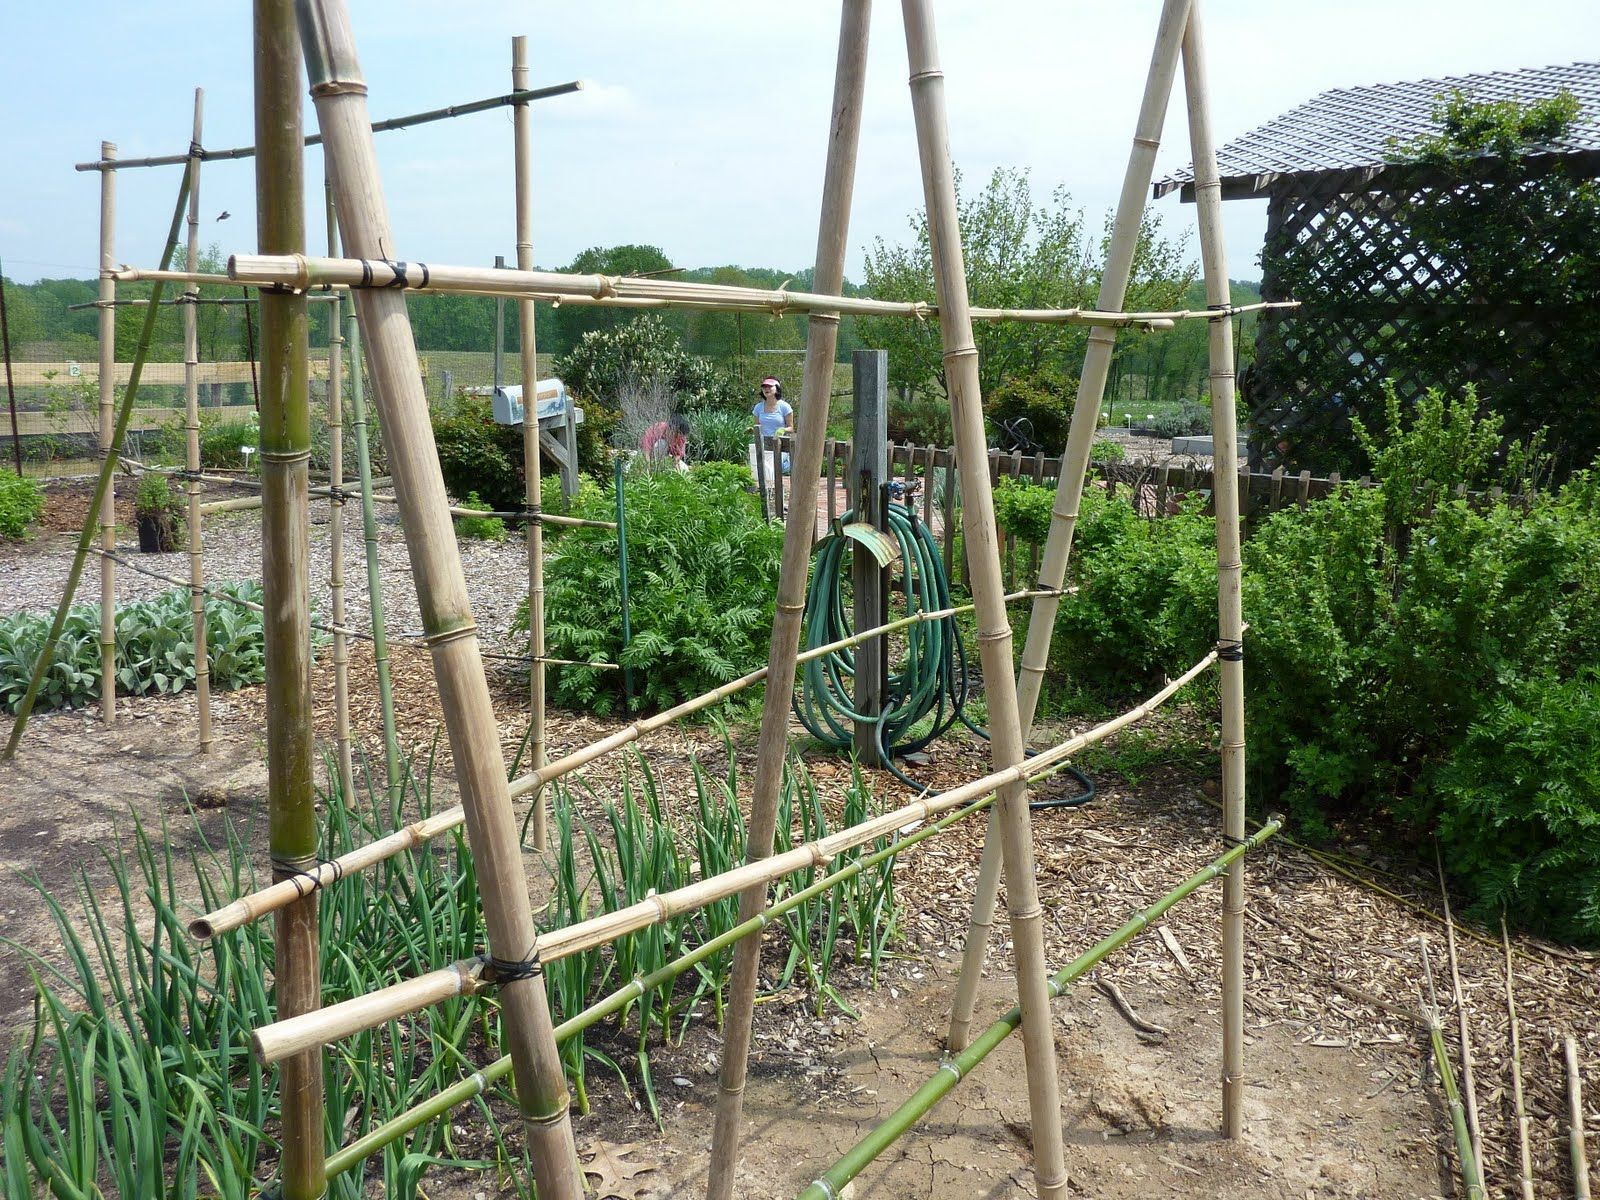 Pin On Gardening Edible Landscaping Permaculture